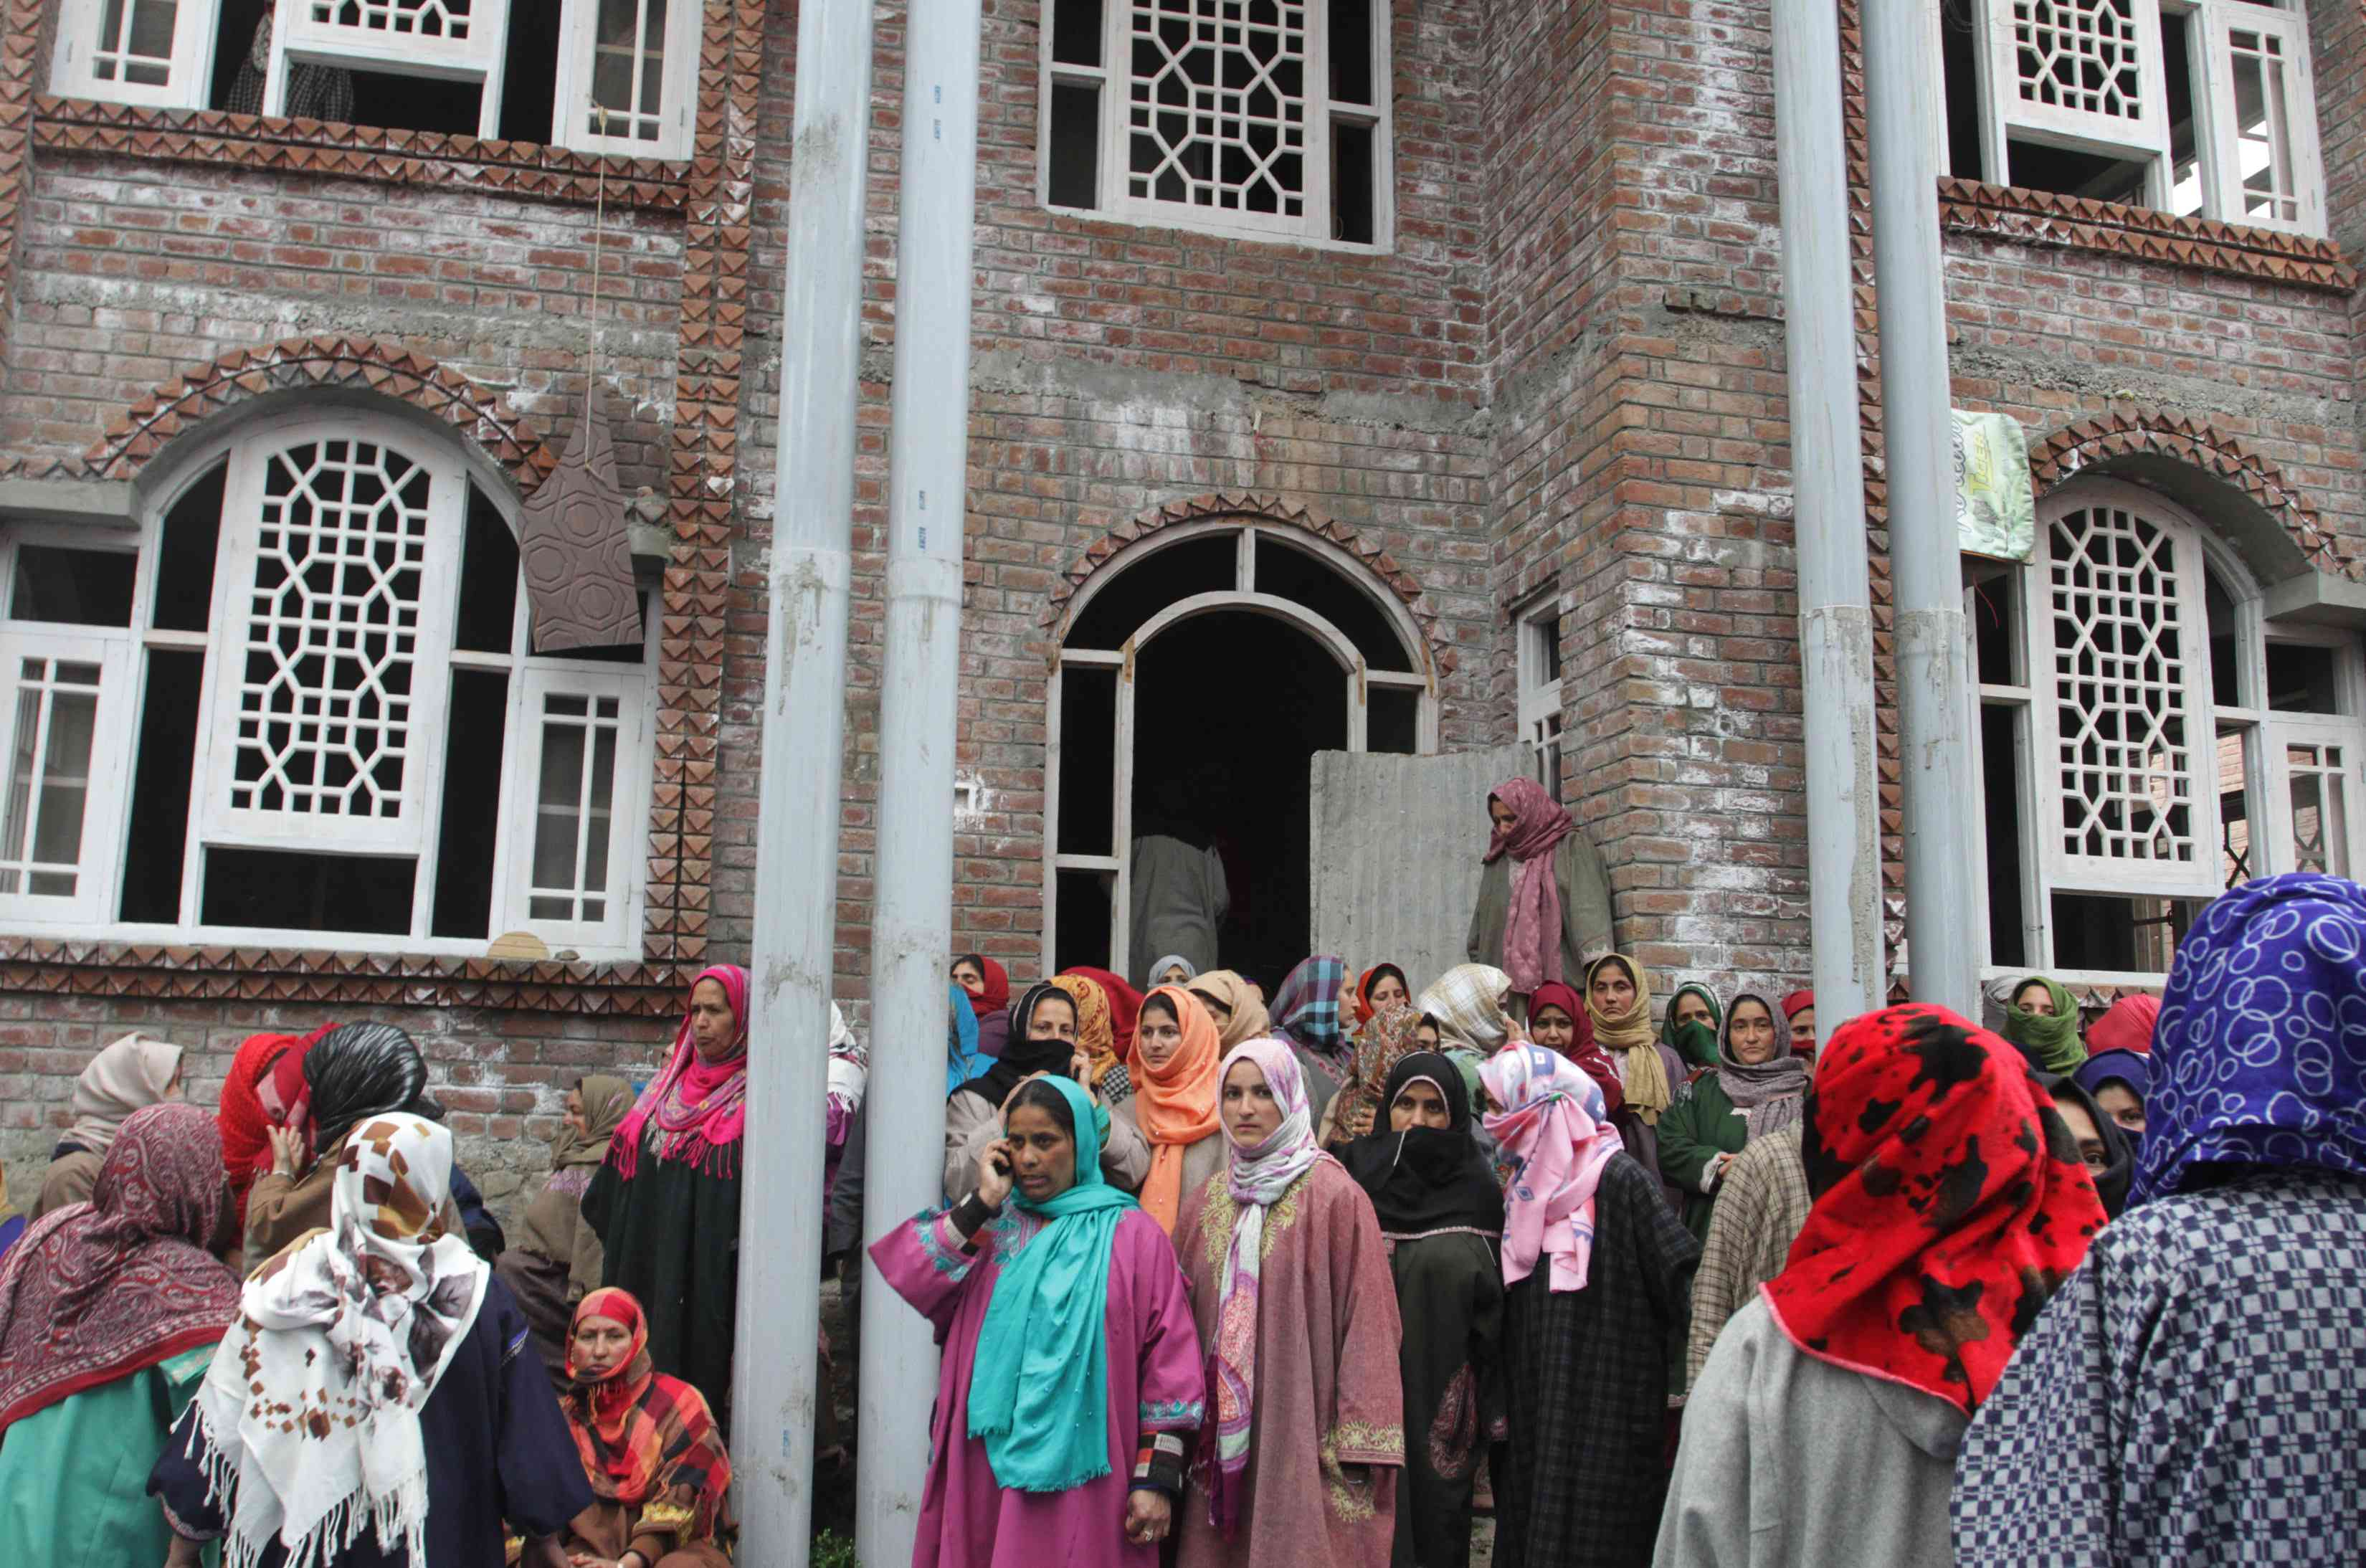 Women mourners outside the Pandit home in Awantipora on Tuesday. (Photo credit: Safwat Zargar).